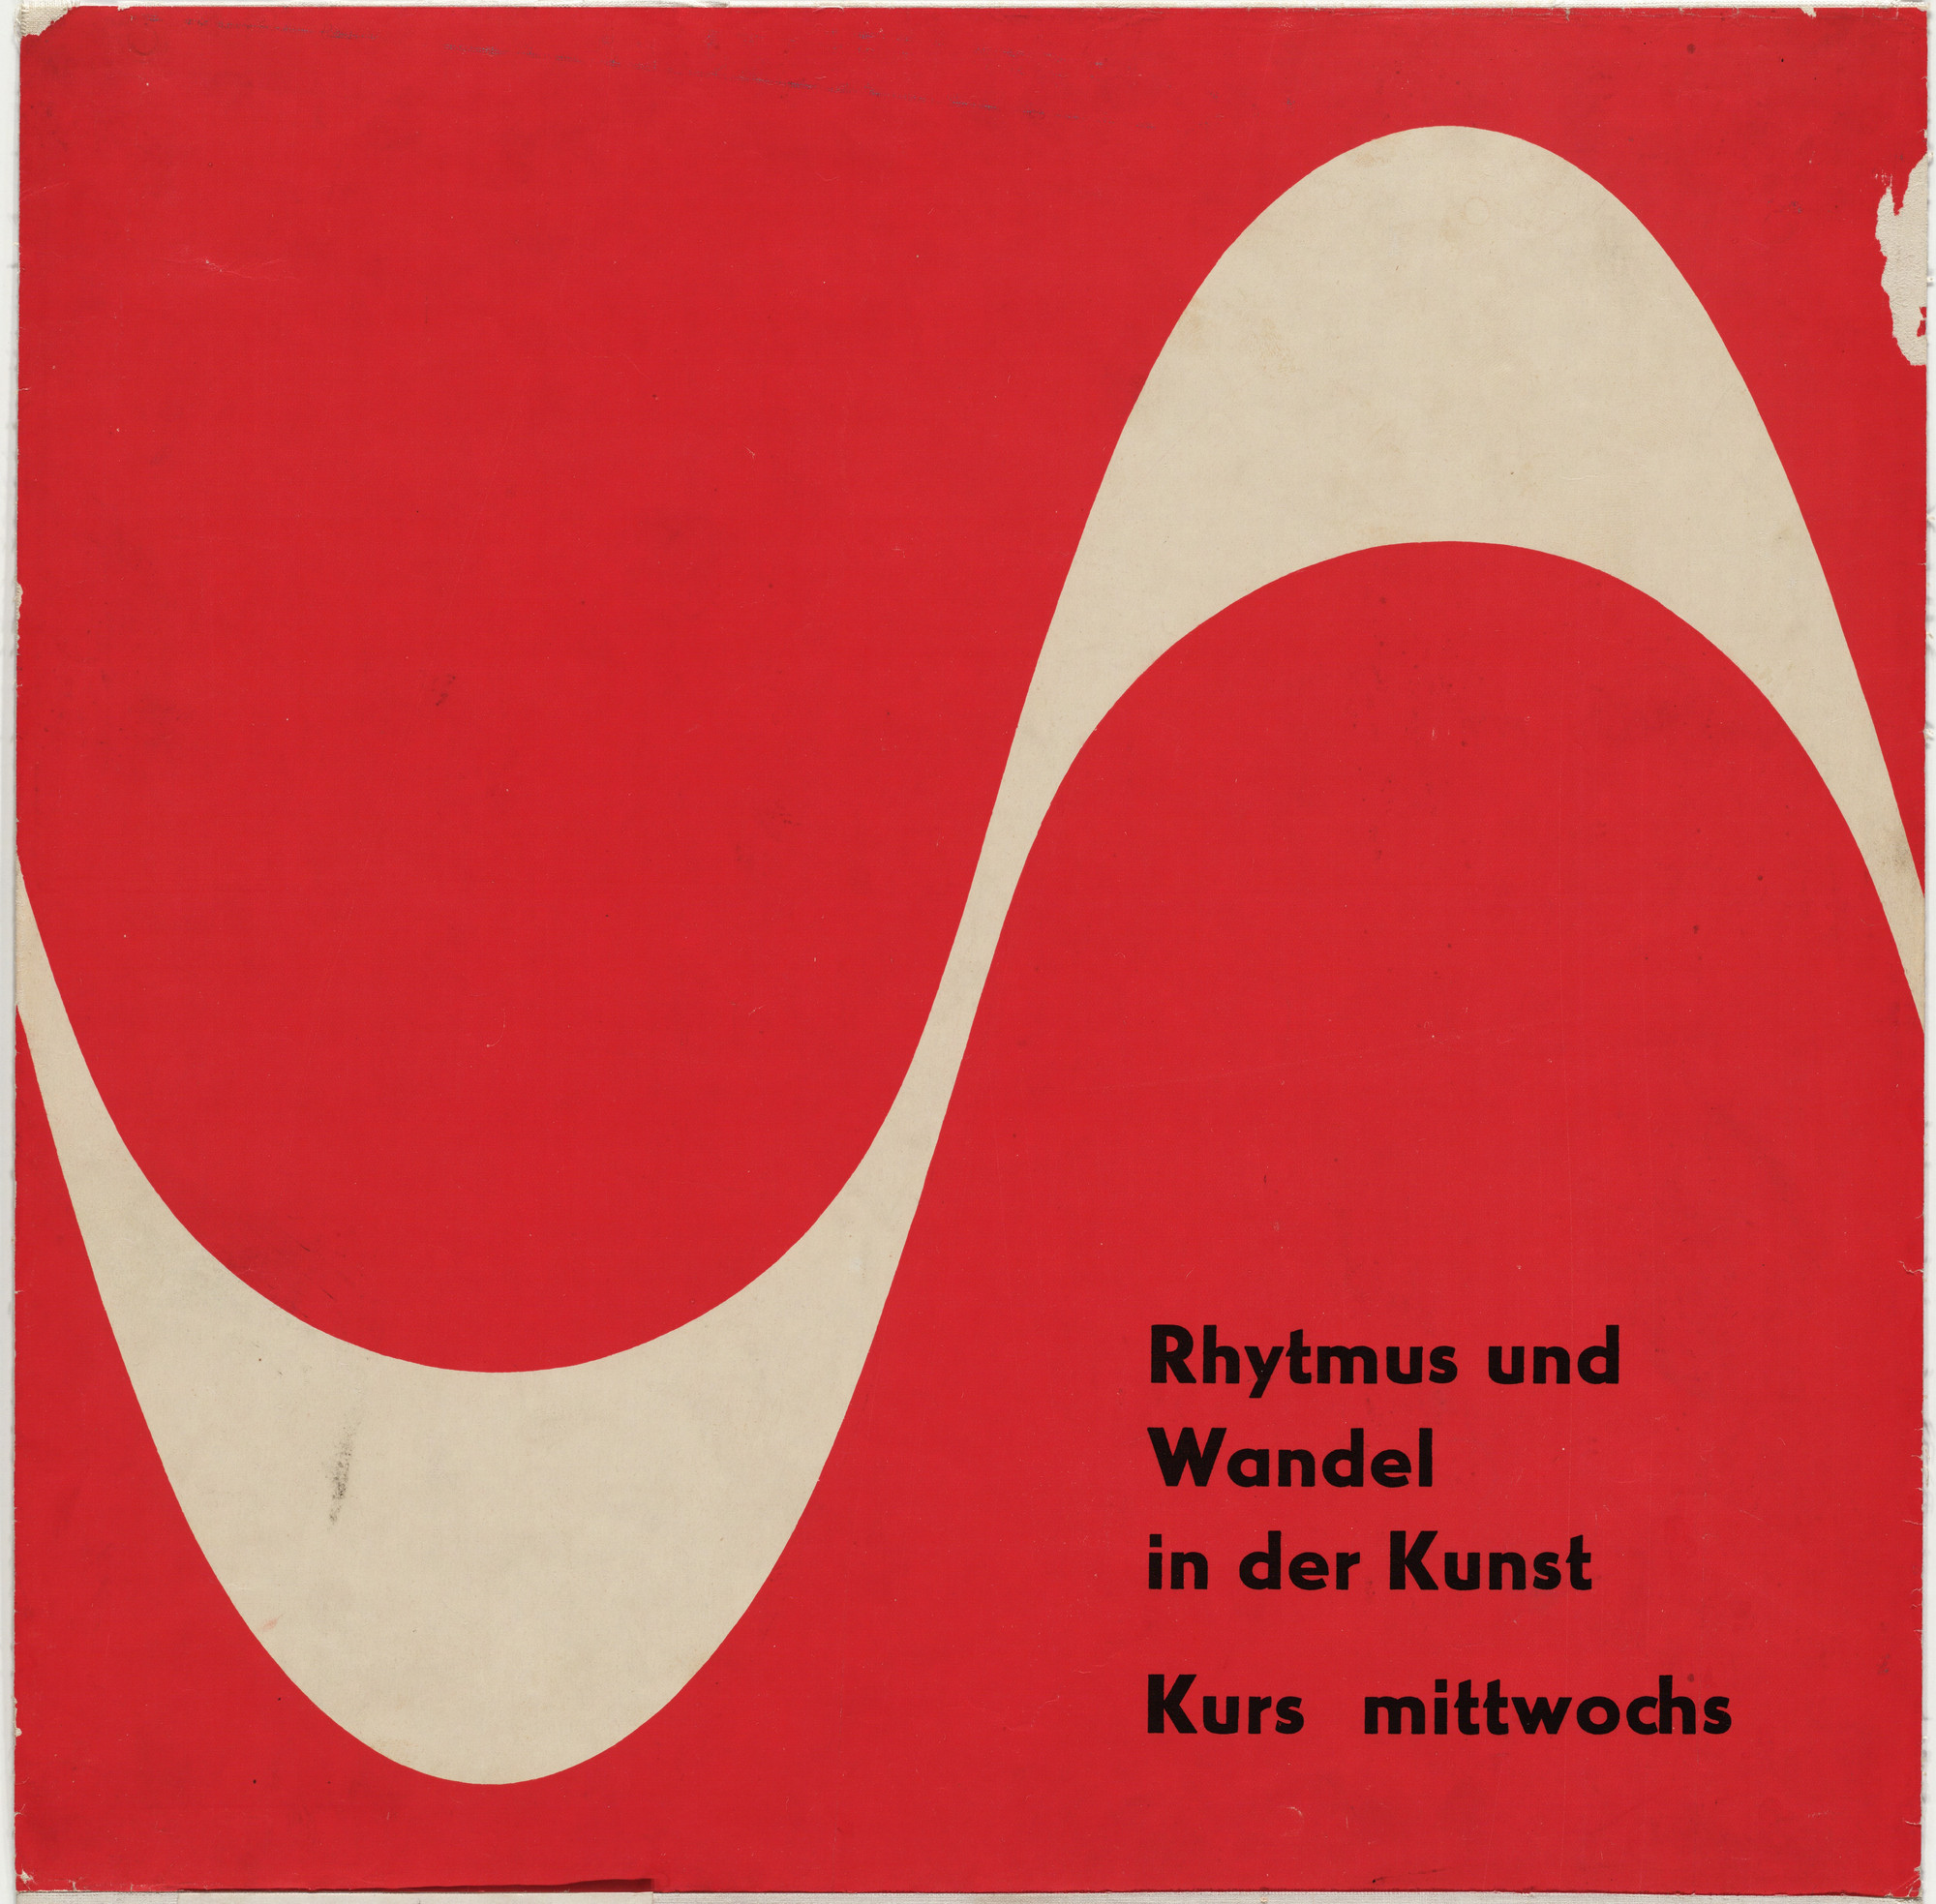 Otl Aicher (also known as Otto Aicher). Rhythmus und Wandel in der Kunst. c. 1950